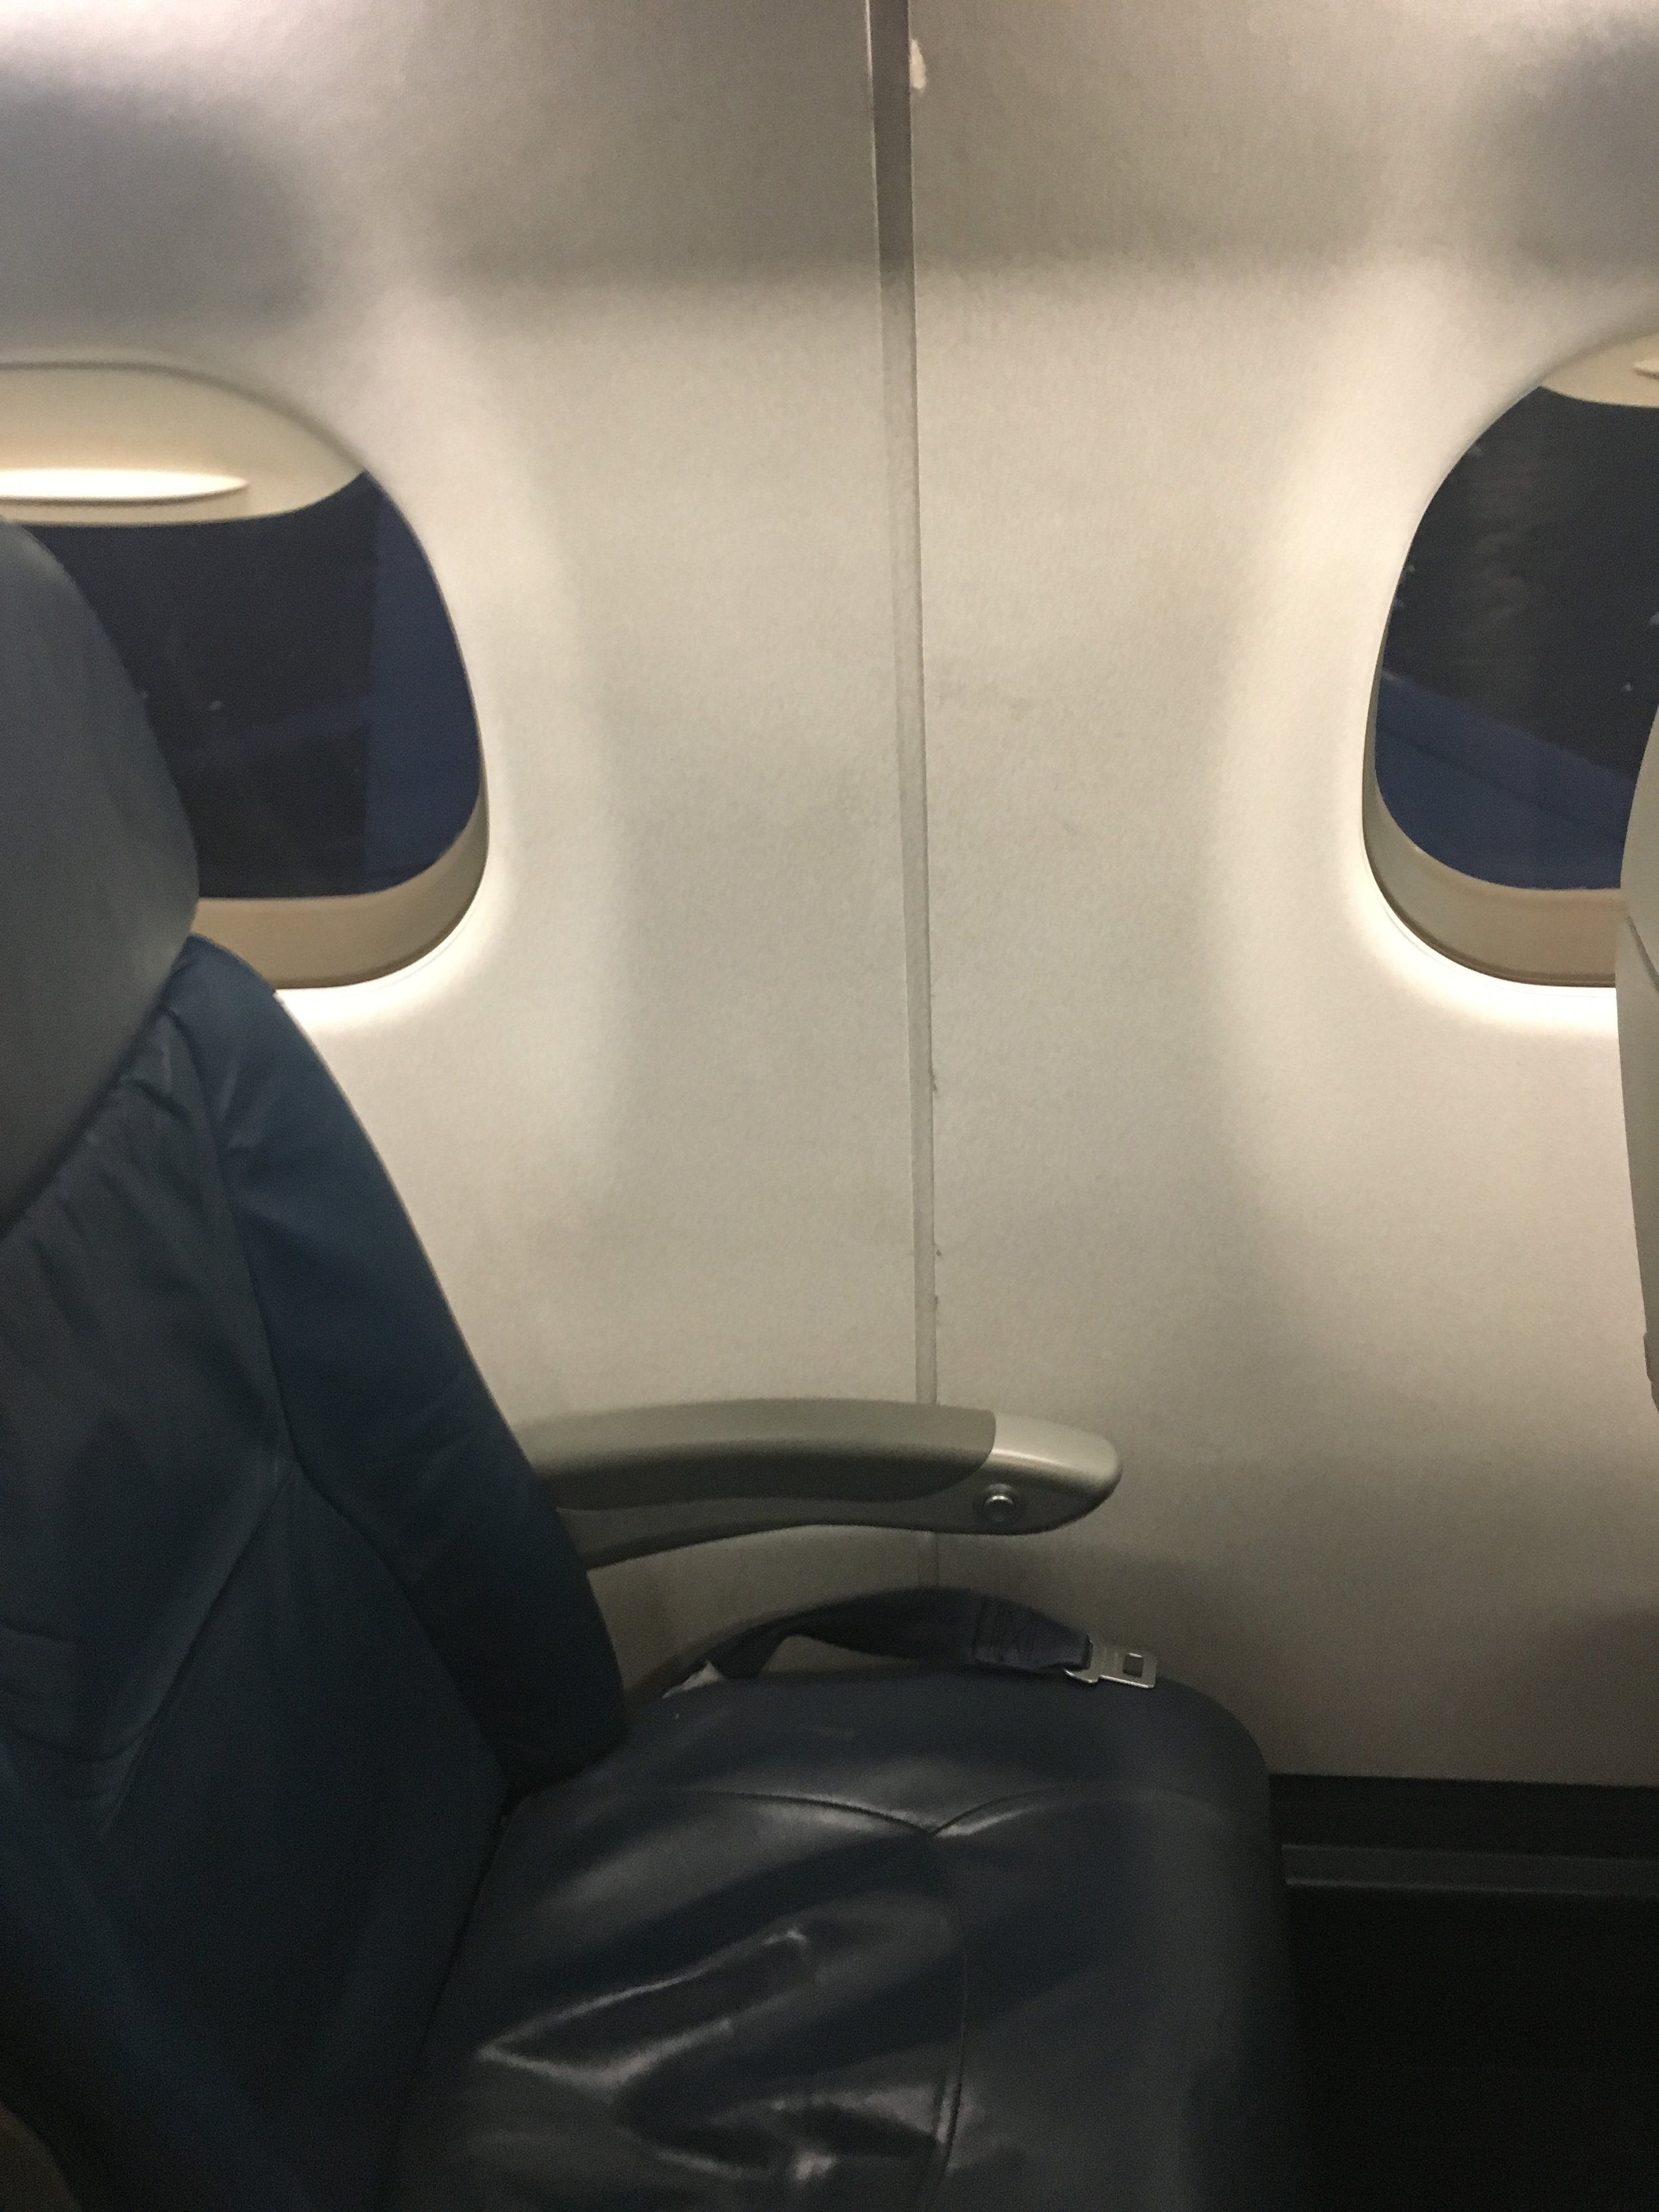 Staggered windows and seats